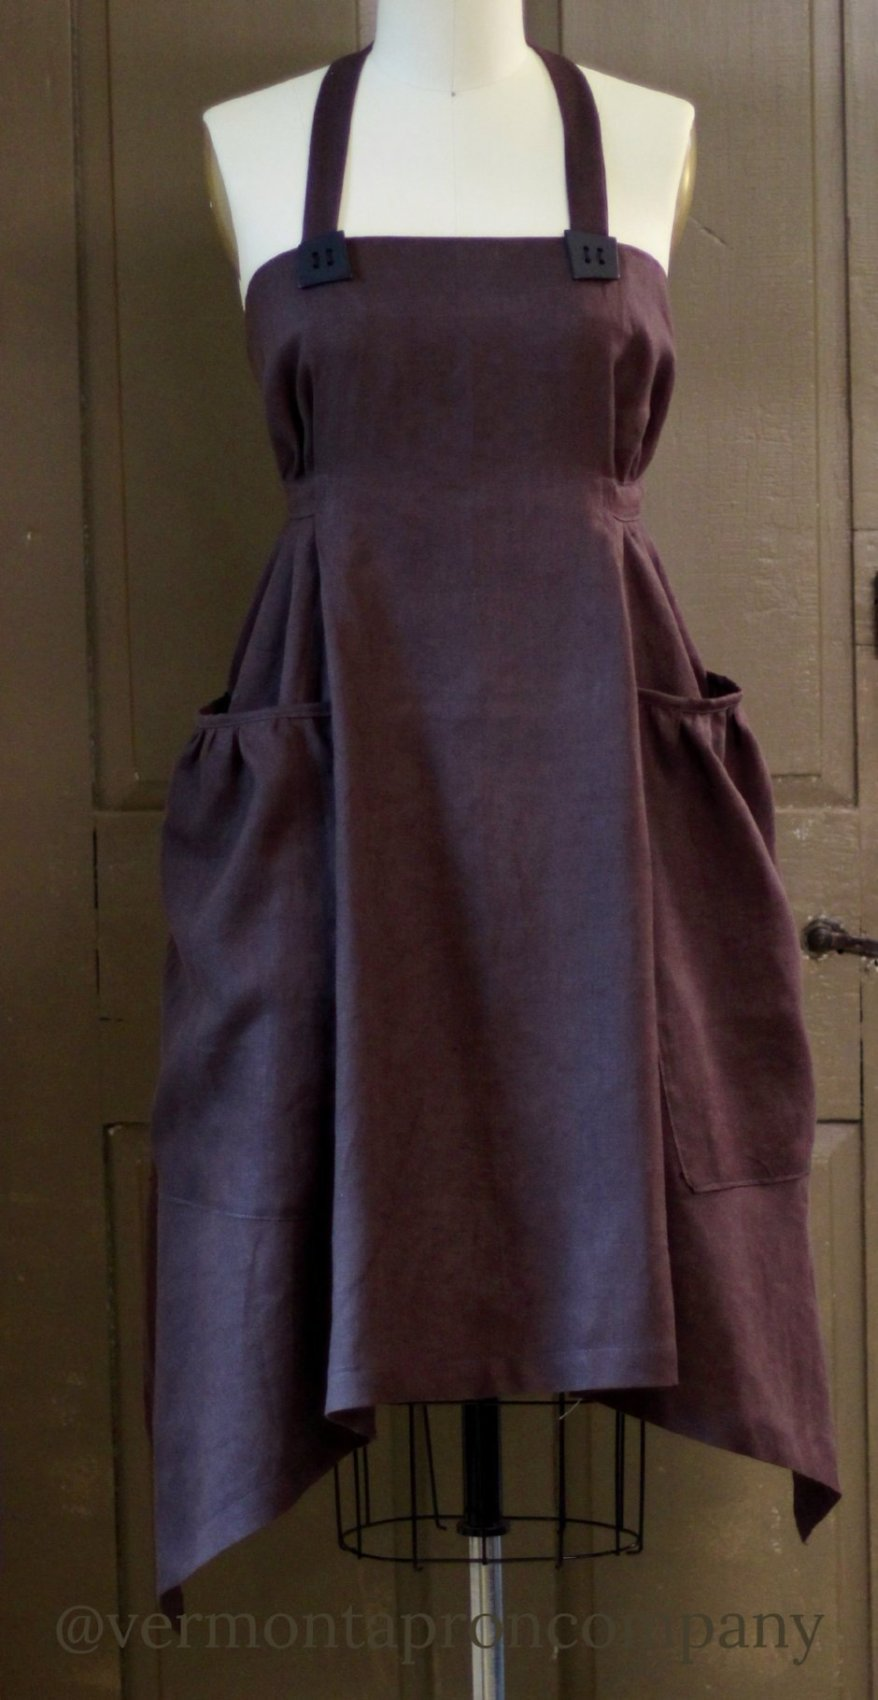 XS-5X  Hippy Apron in Chocolate Brown 100% Flax Linen, front view